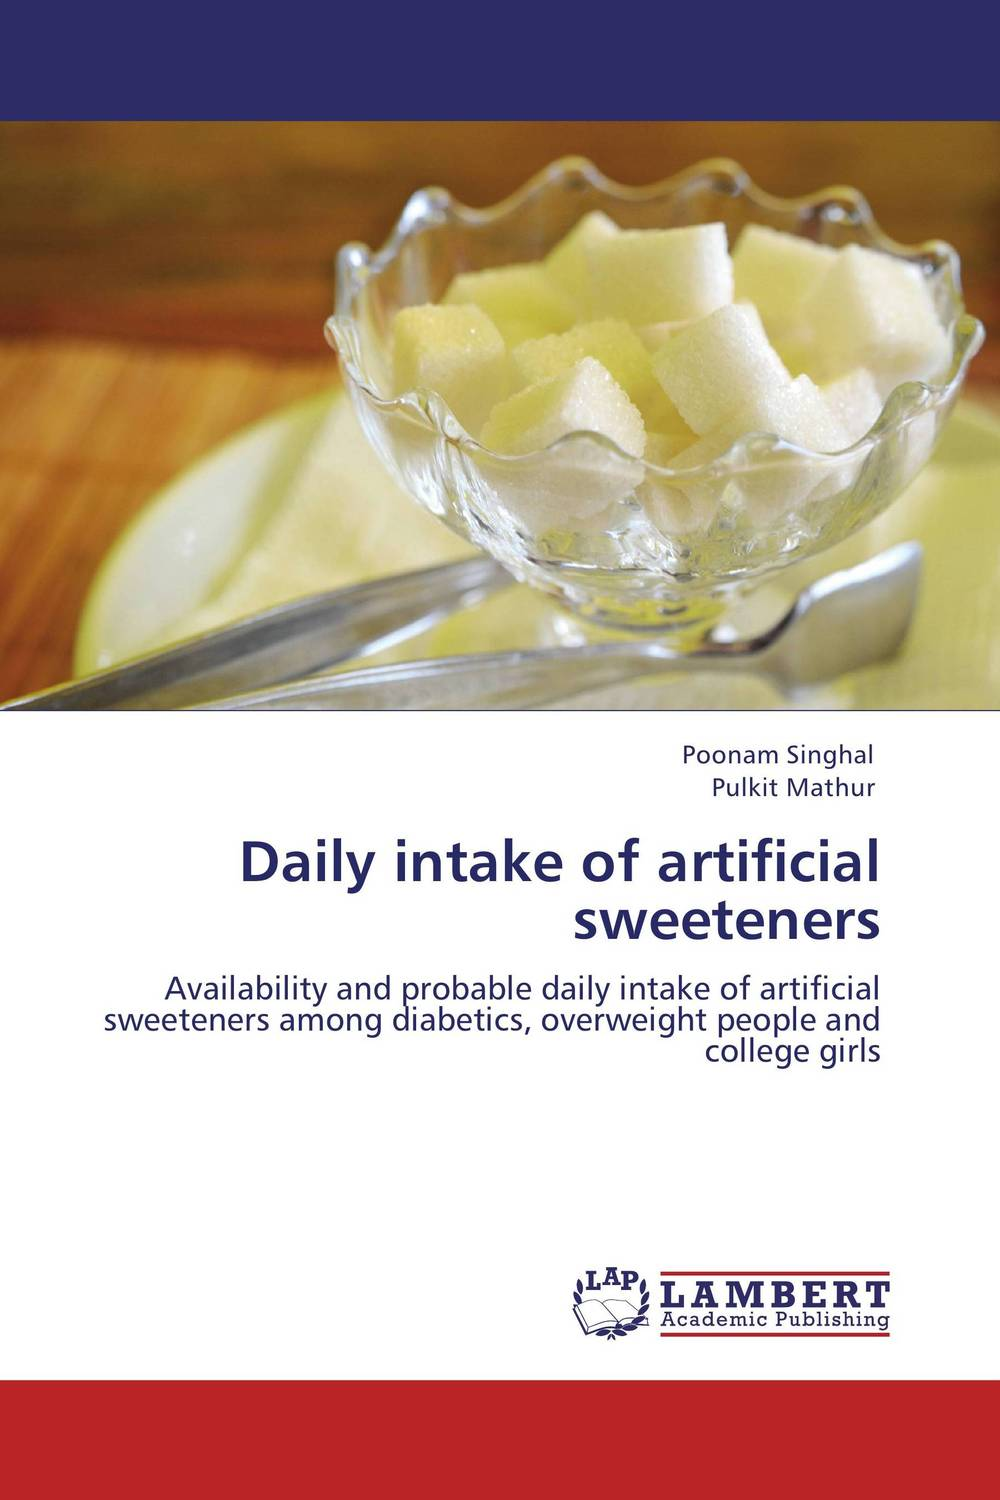 Daily intake of artificial sweeteners study of pose